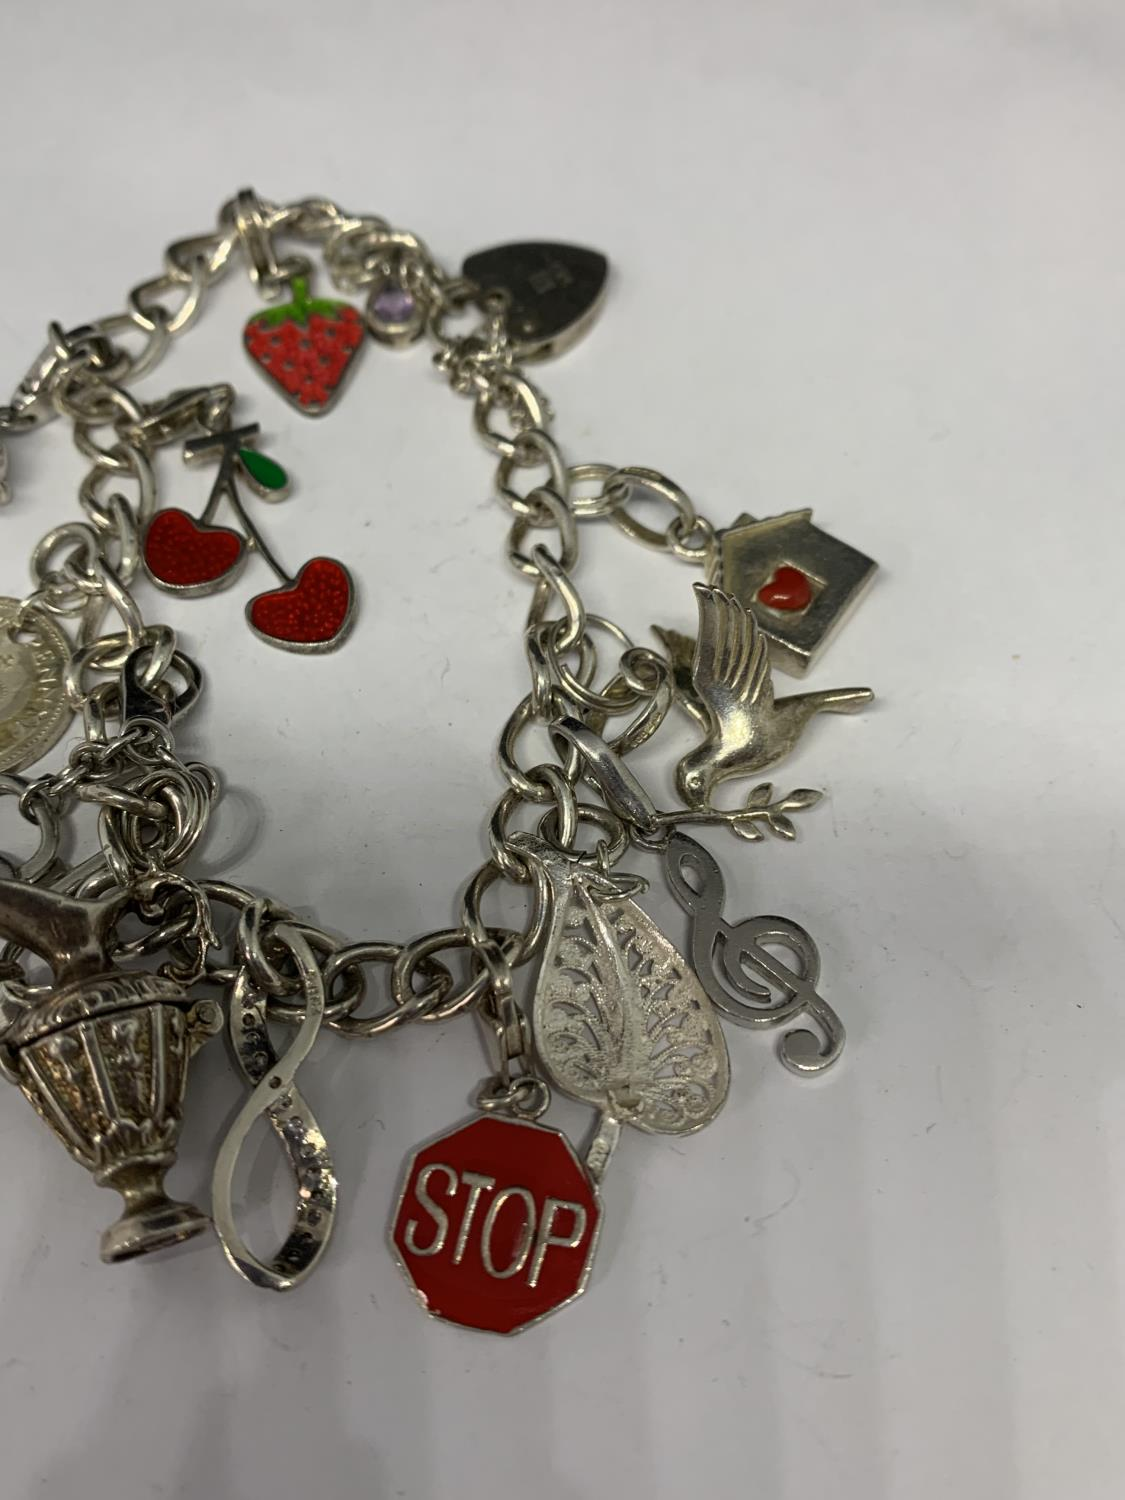 A HEAVY SILVER CHARM BRACELET WITH THIRTEEN CHARMS TO INCLUDE A STRAWBERRY, CHERRIES, DOVE ETC - Image 4 of 4